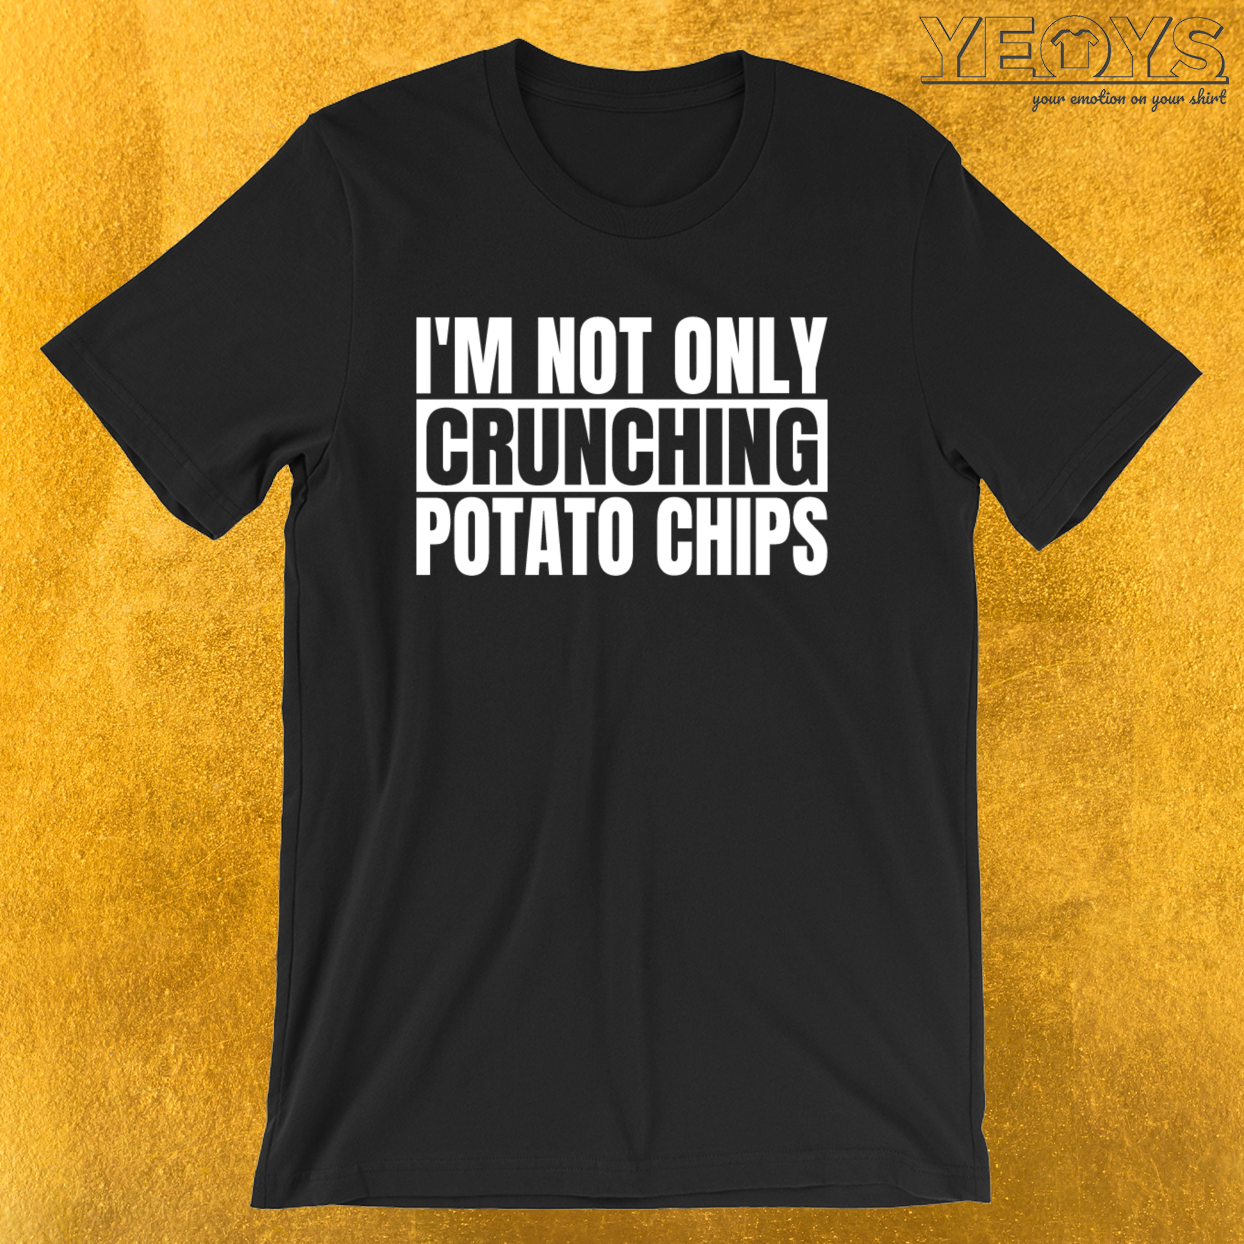 I'm Not Only Crunching Potato Chips – Bodybuilding Tee